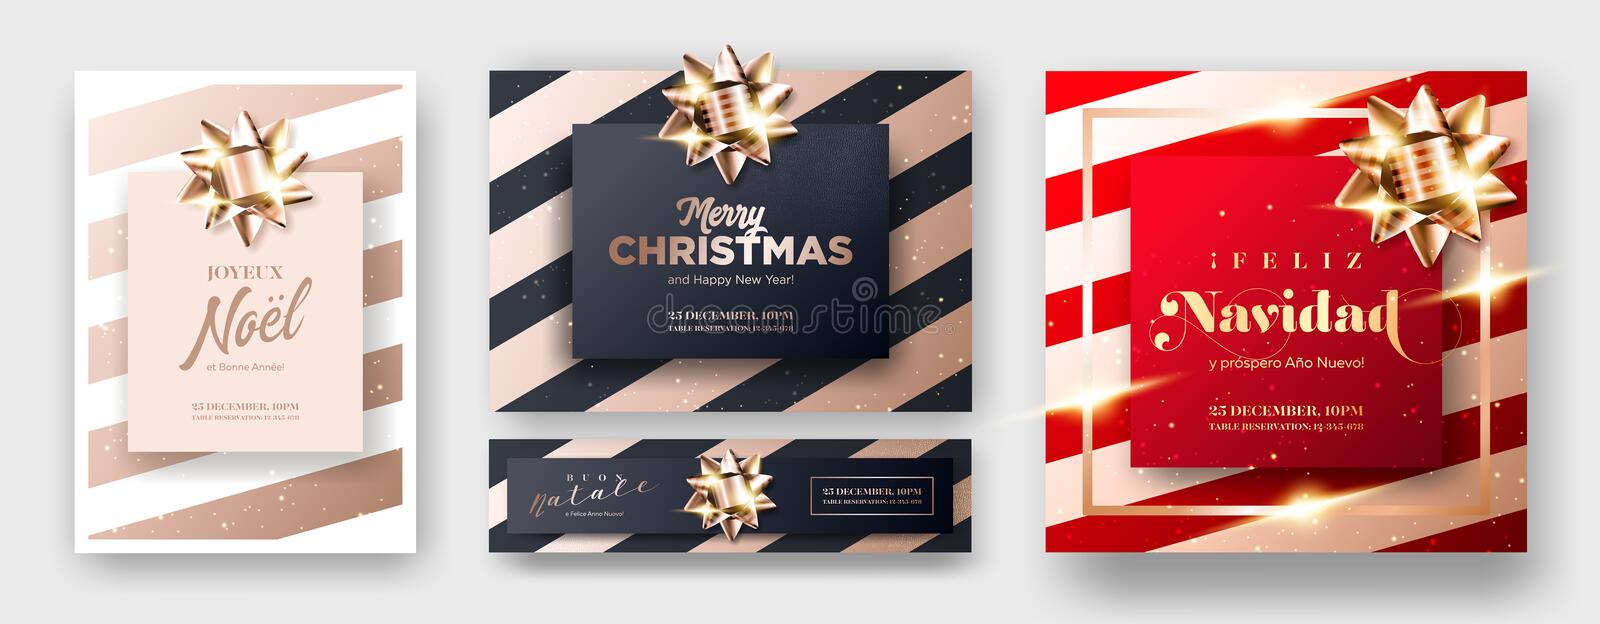 Merry Christmas 2019 Greeting Card Covers. vector illustration